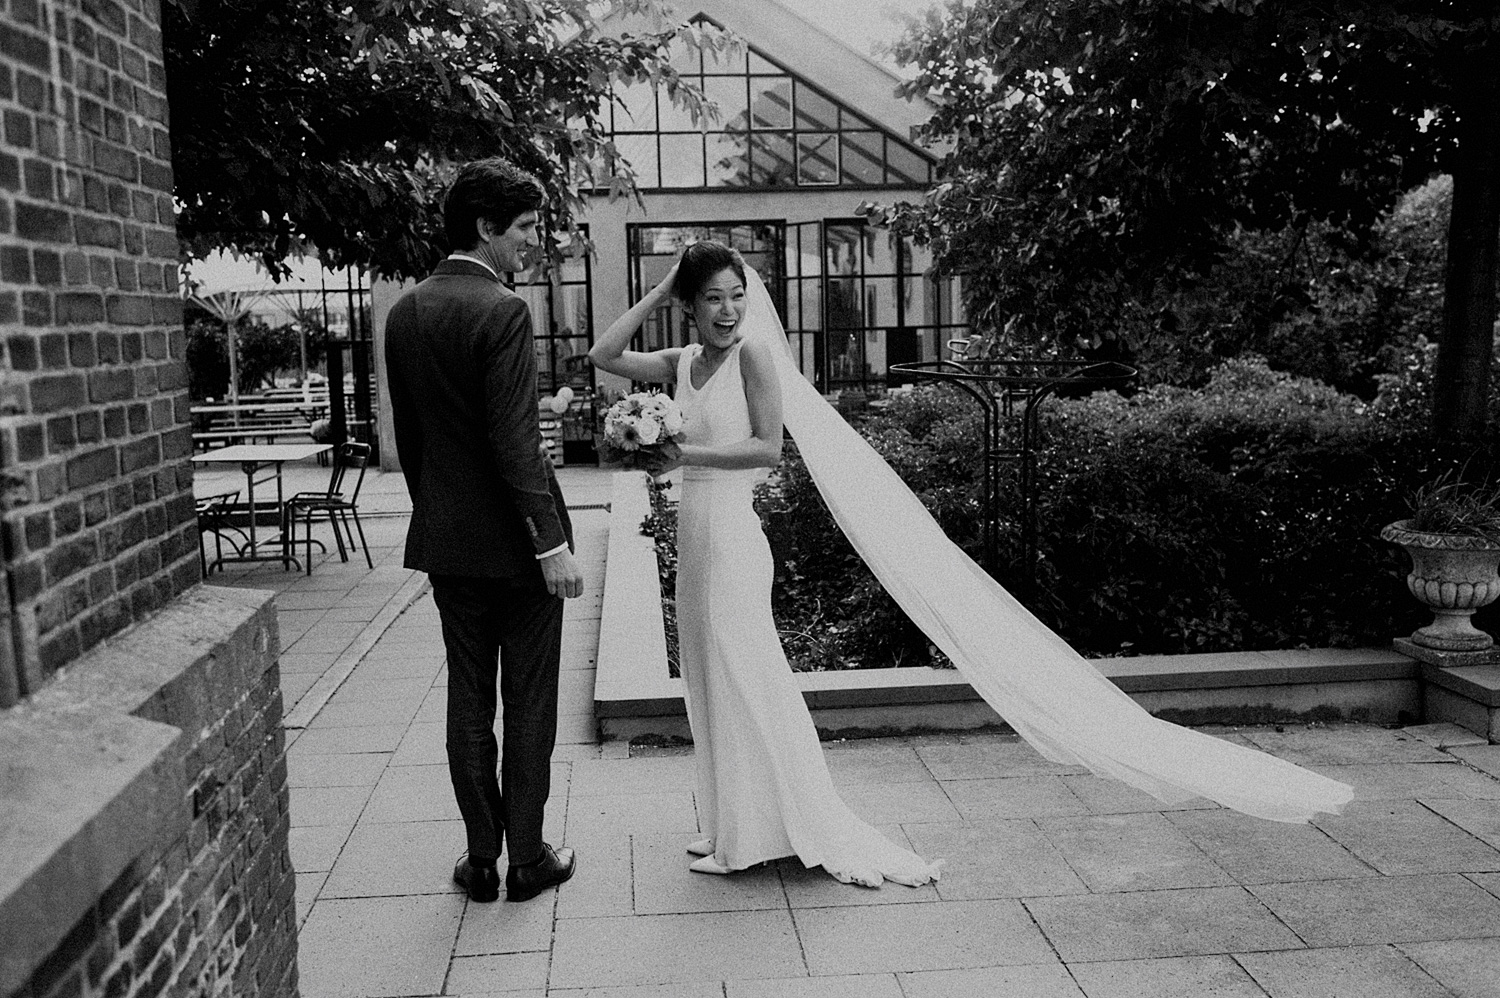 097-sjoerdbooijphotography-wedding-nard-joming.jpg